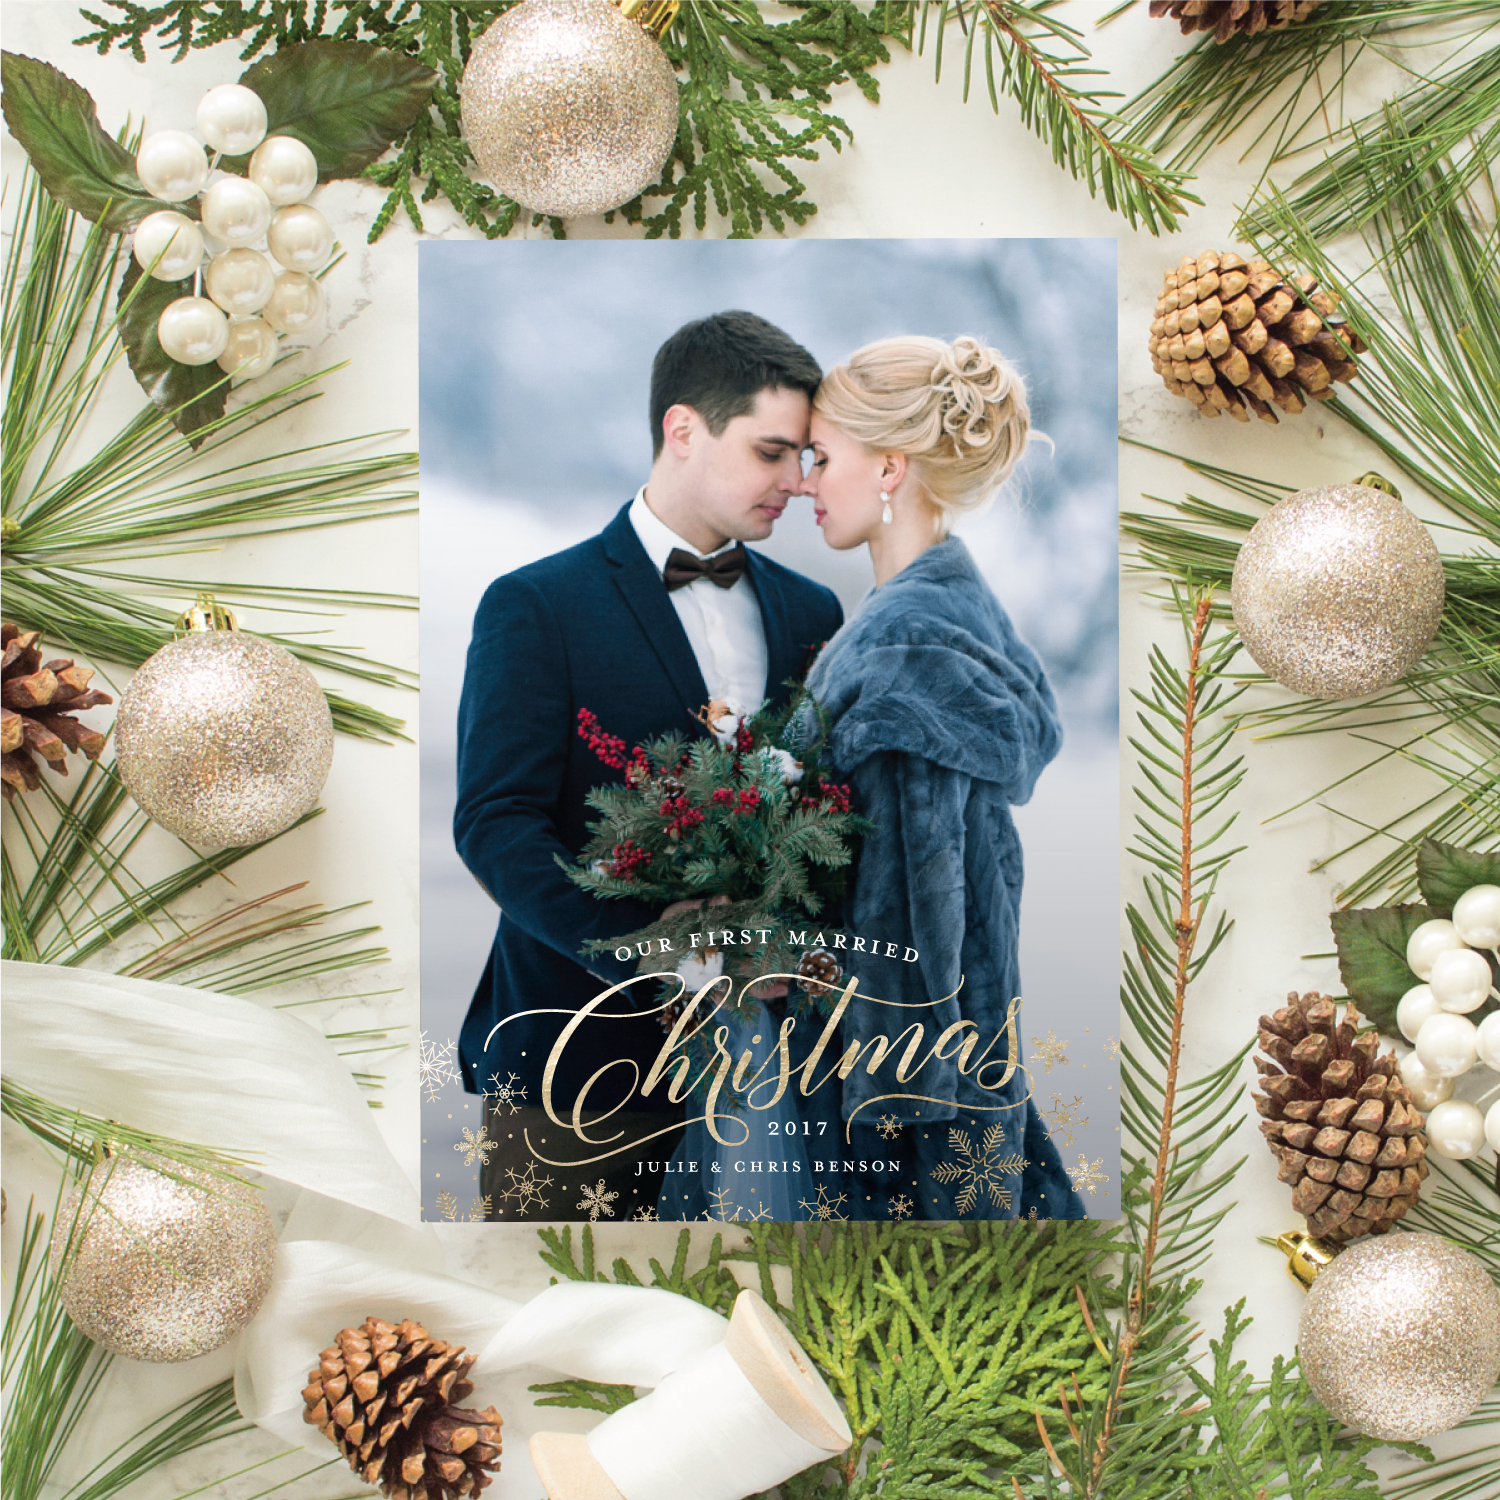 newlywed first christmas card